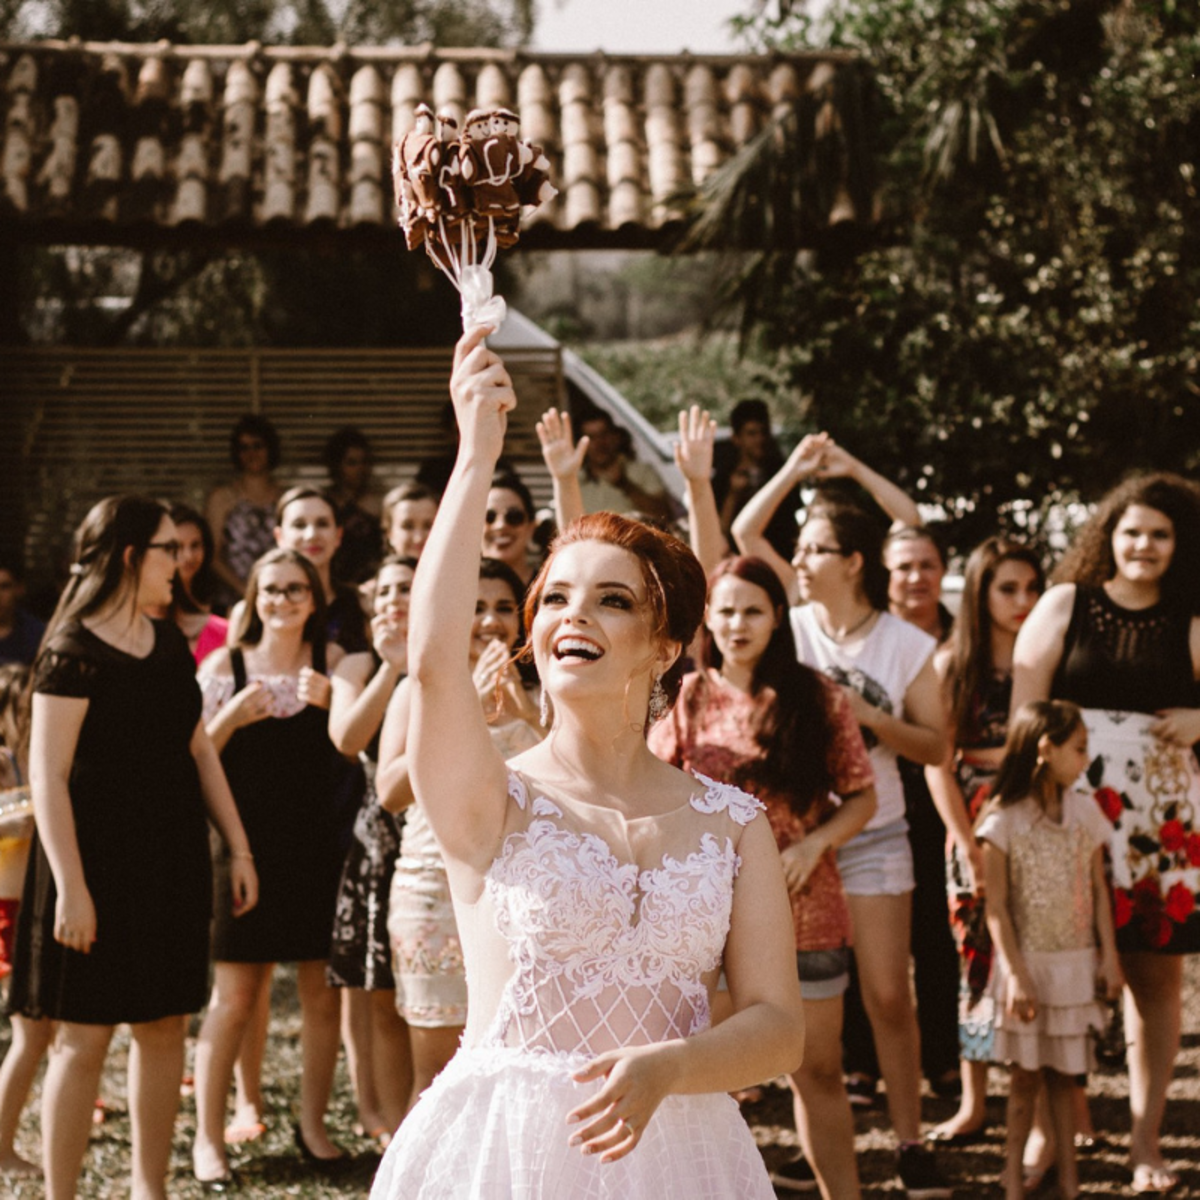 The throwing of the bride's bouquet is a longstanding wedding tradition that is still practiced by many.